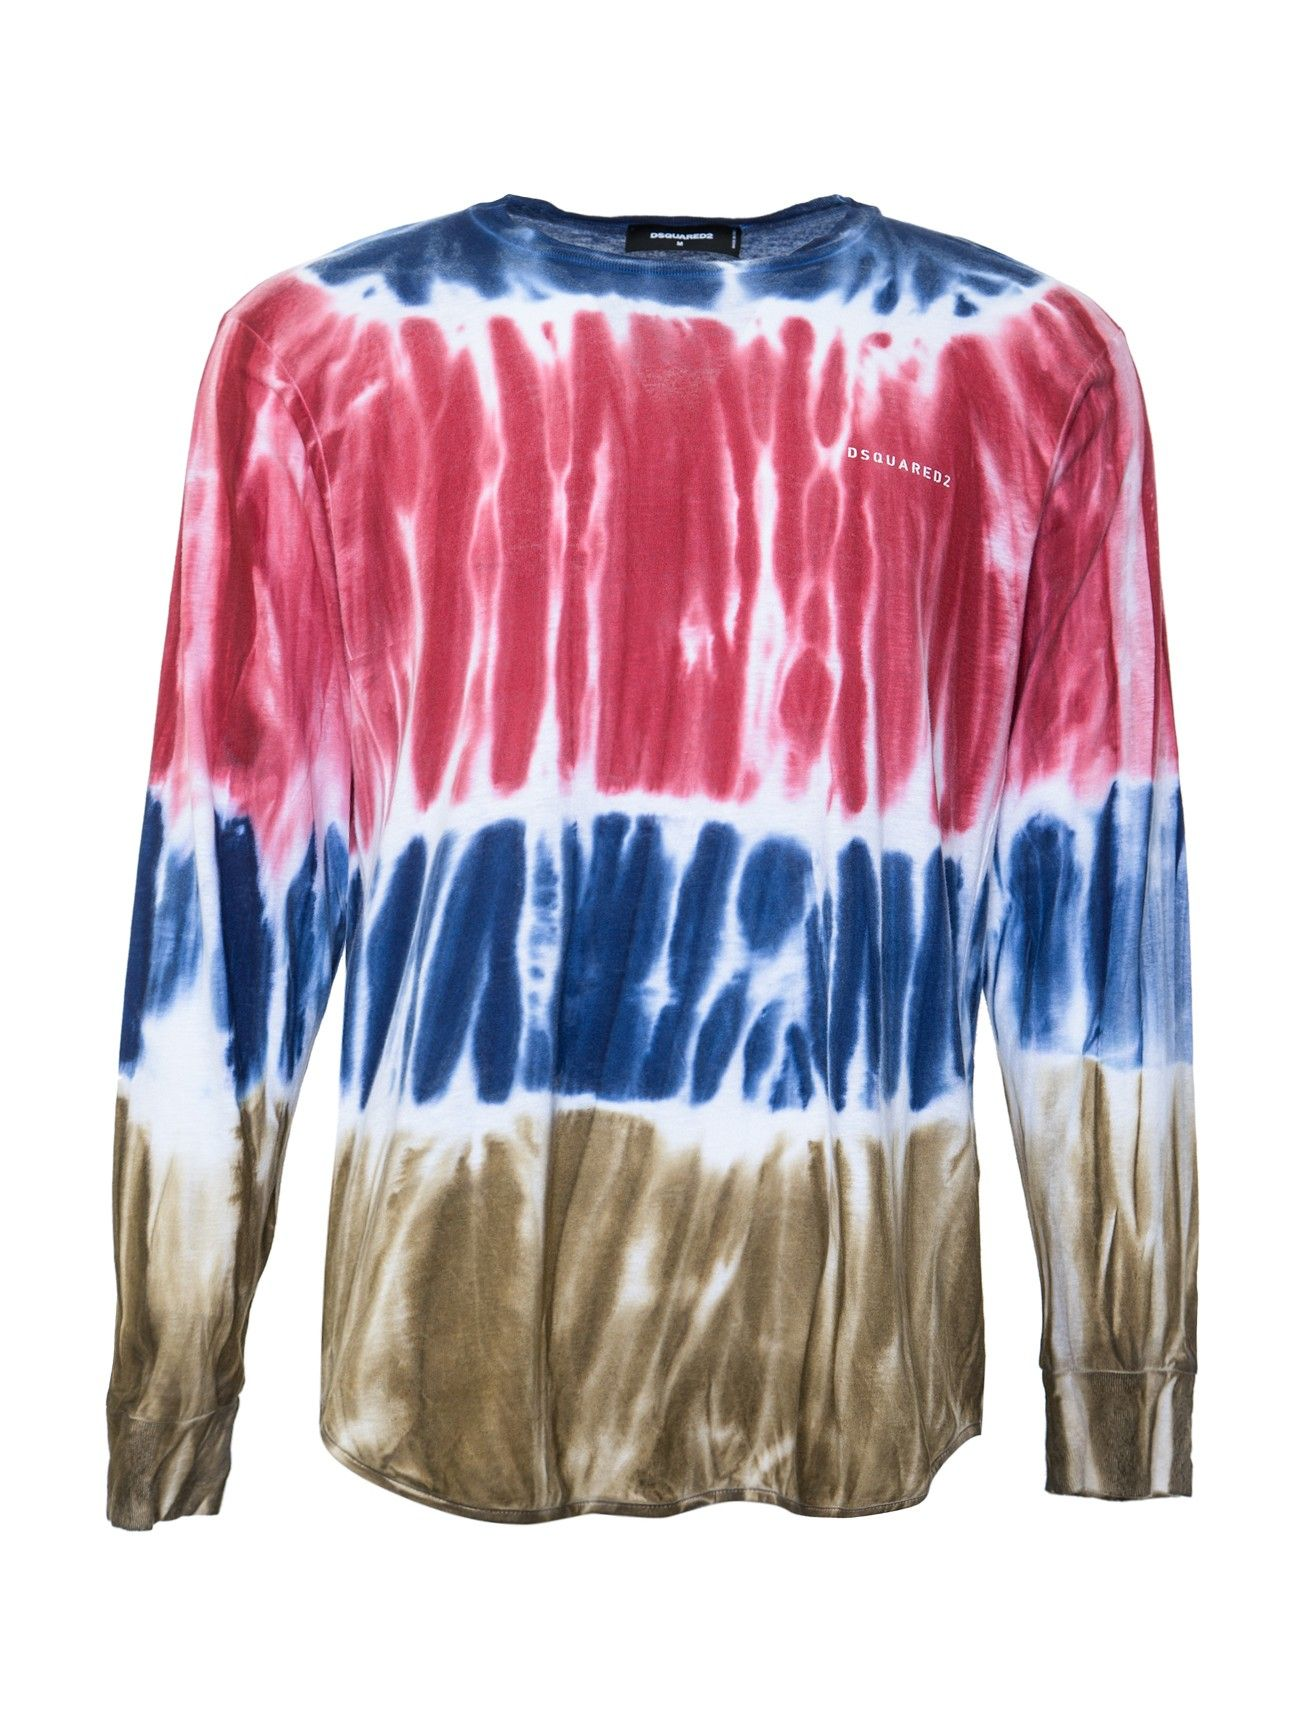 DSquared2 Long Sleeve Tie Dye Shirt - DSquared2 always designs funky and cool pieces to shake up your wardrobe. This tie-dye shirt is perfect for a fun day adventuring, concert hopping or globe-trotting.